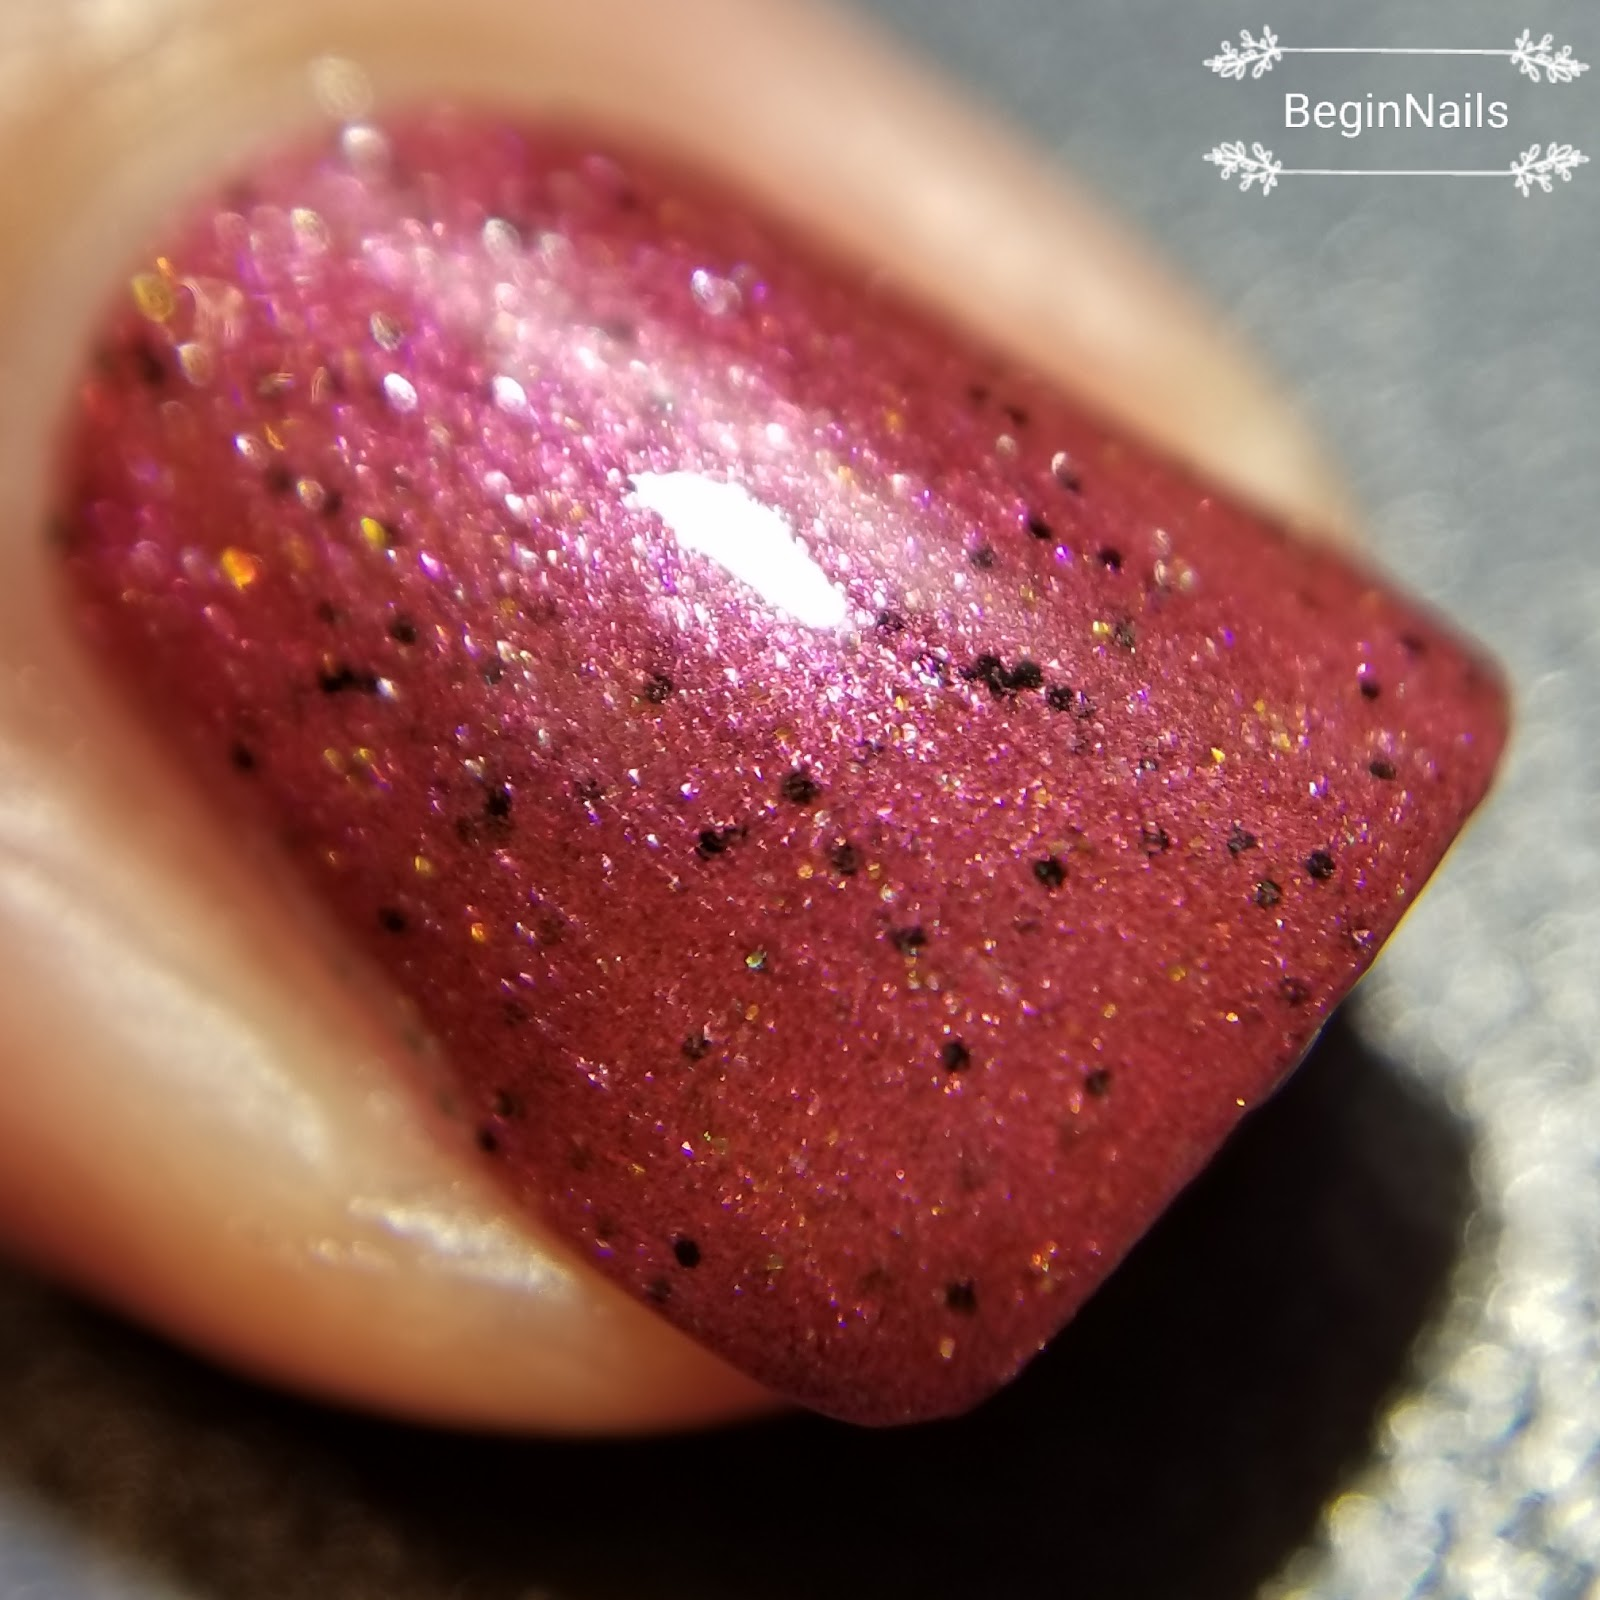 Next Is The Pink Liquid Which A Squishy Neon Jelly Polish This Bright Fun And It Opaque In 2 3 Coats